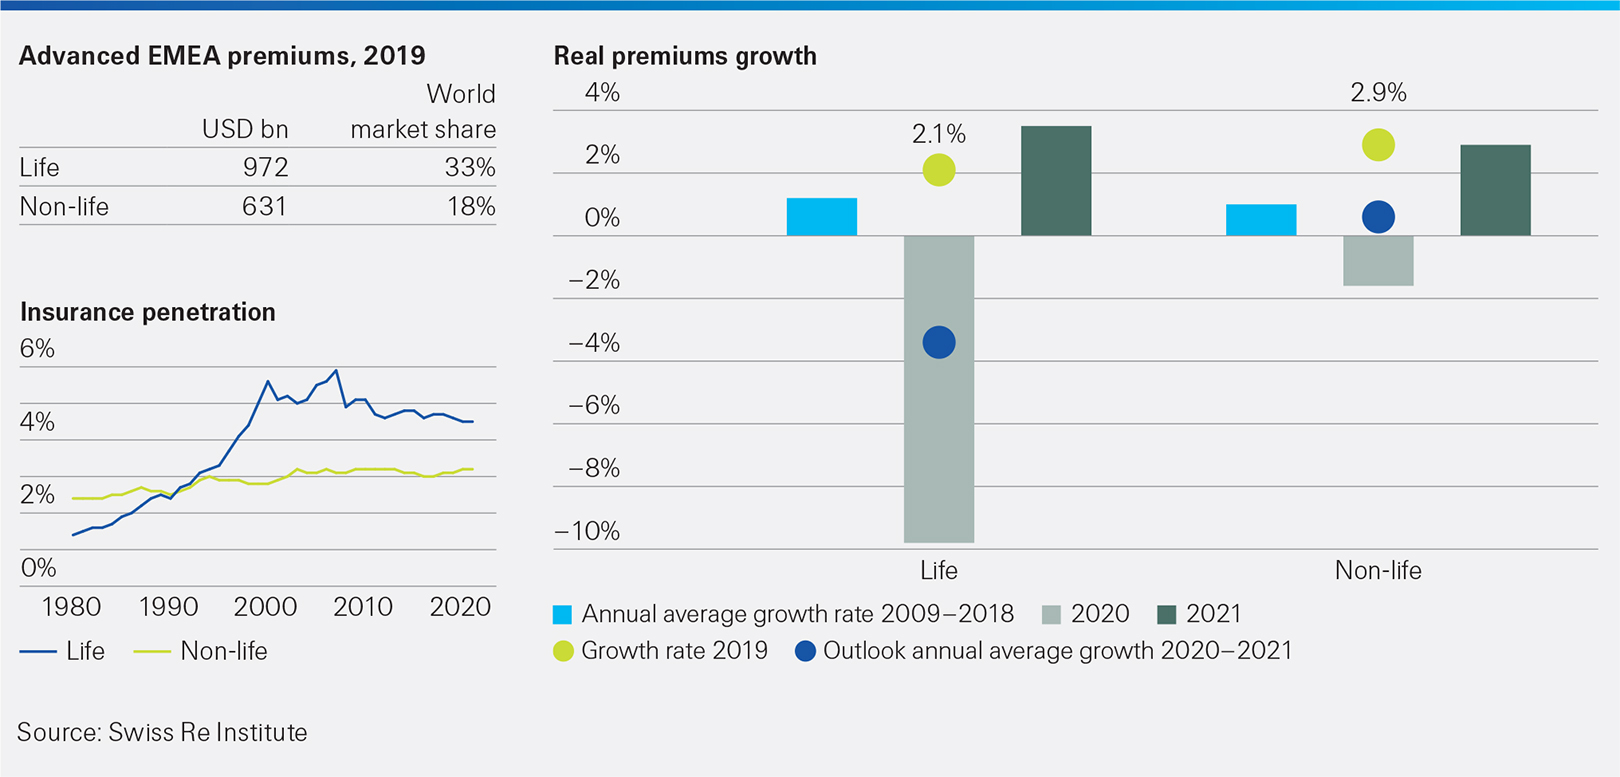 This infographic shows advanced EMEA - insurance penetration and premium growth rates. sigma 4/2020 extra